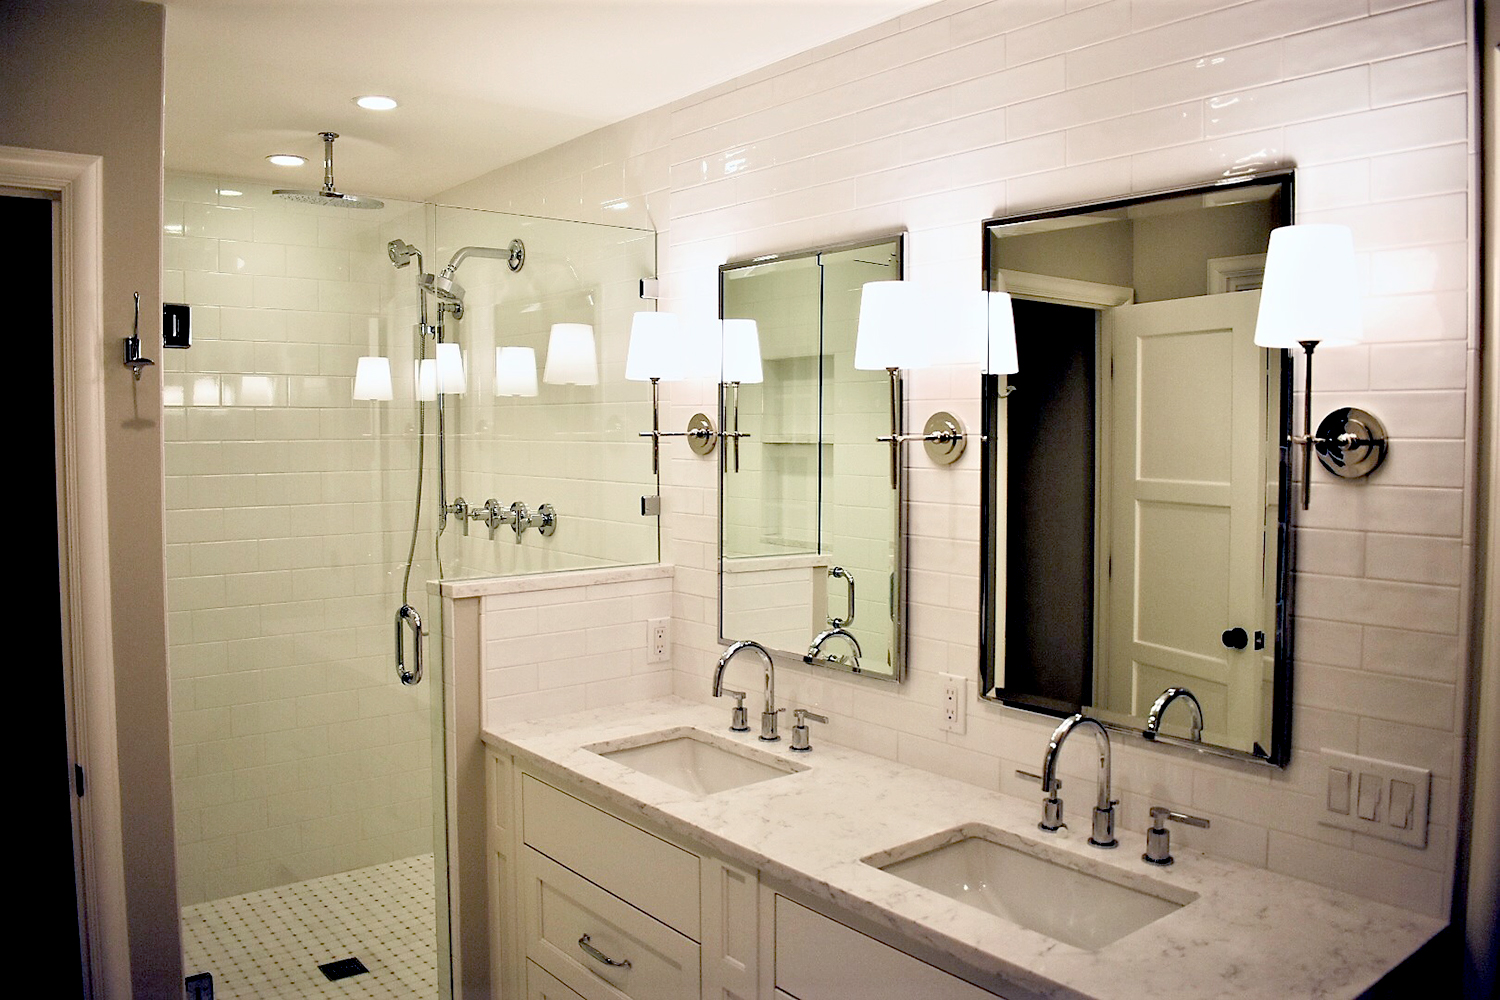 Green Lake New Construction - Bathroom with custom shower fixtures